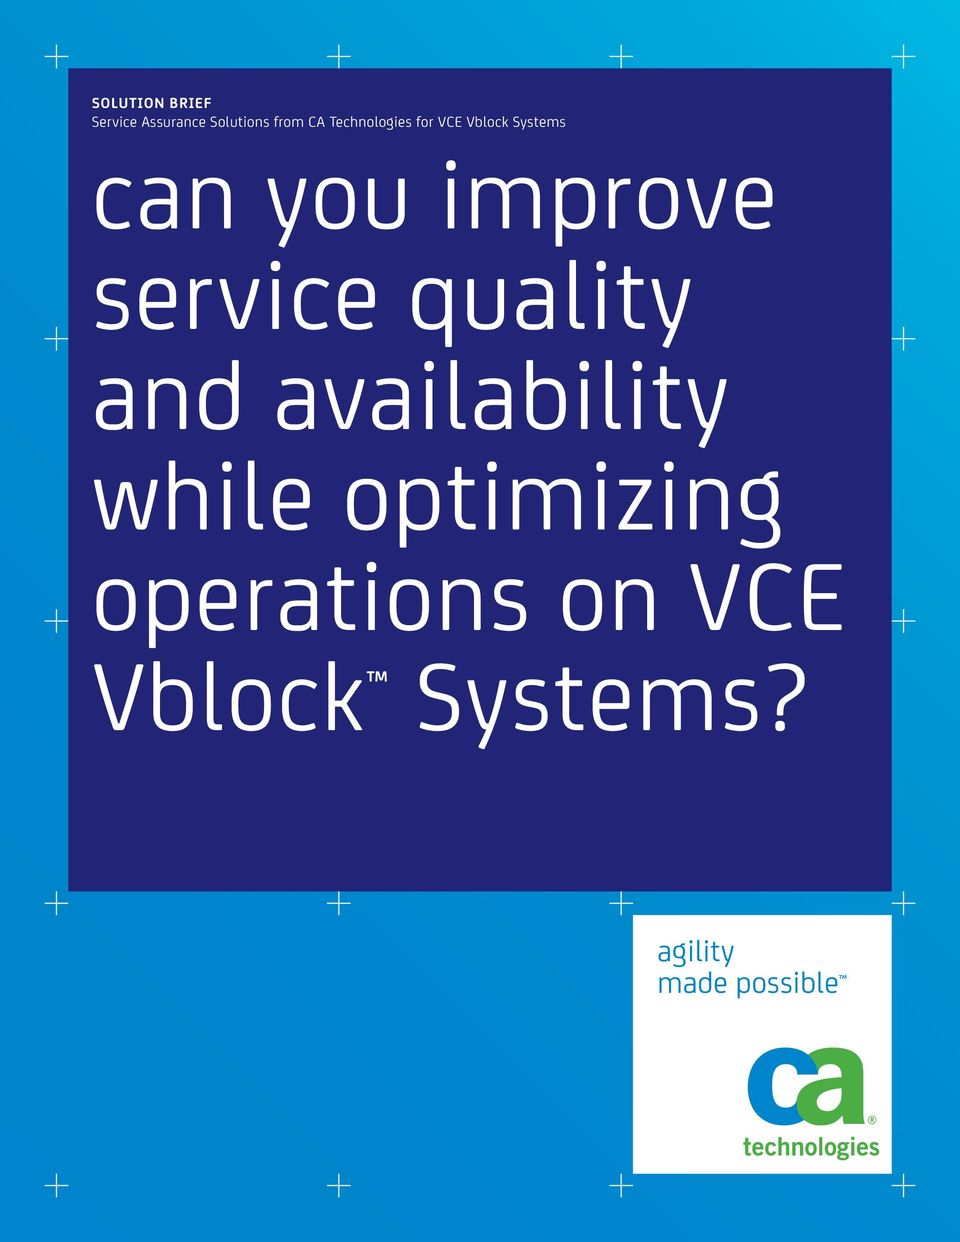 service quality and availability while optimizing